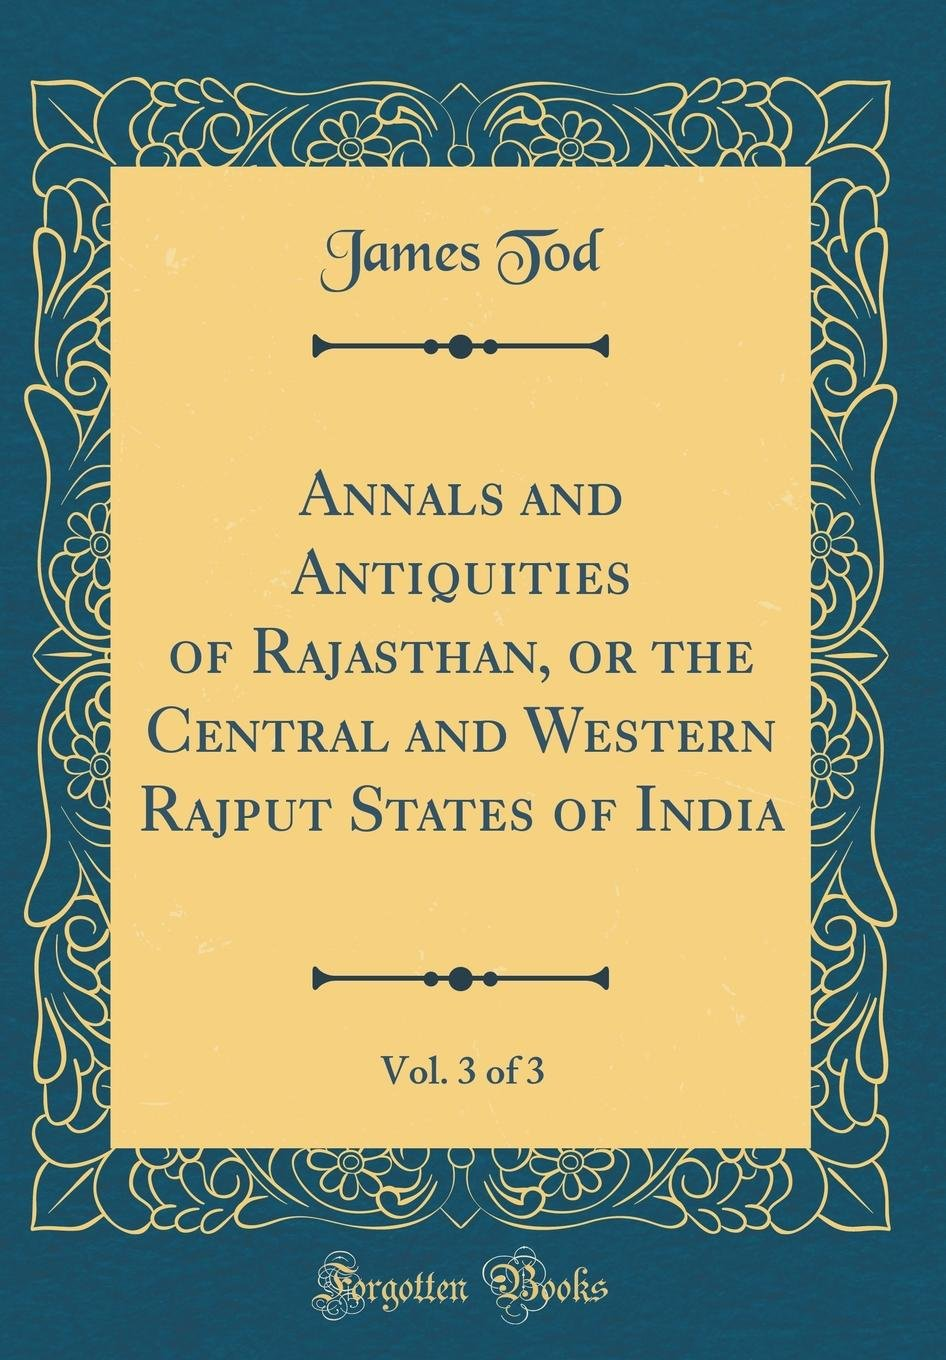 Read Online Annals and Antiquities of Rajasthan, or the Central and Western Rajput States of India, Vol. 3 of 3 (Classic Reprint) PDF